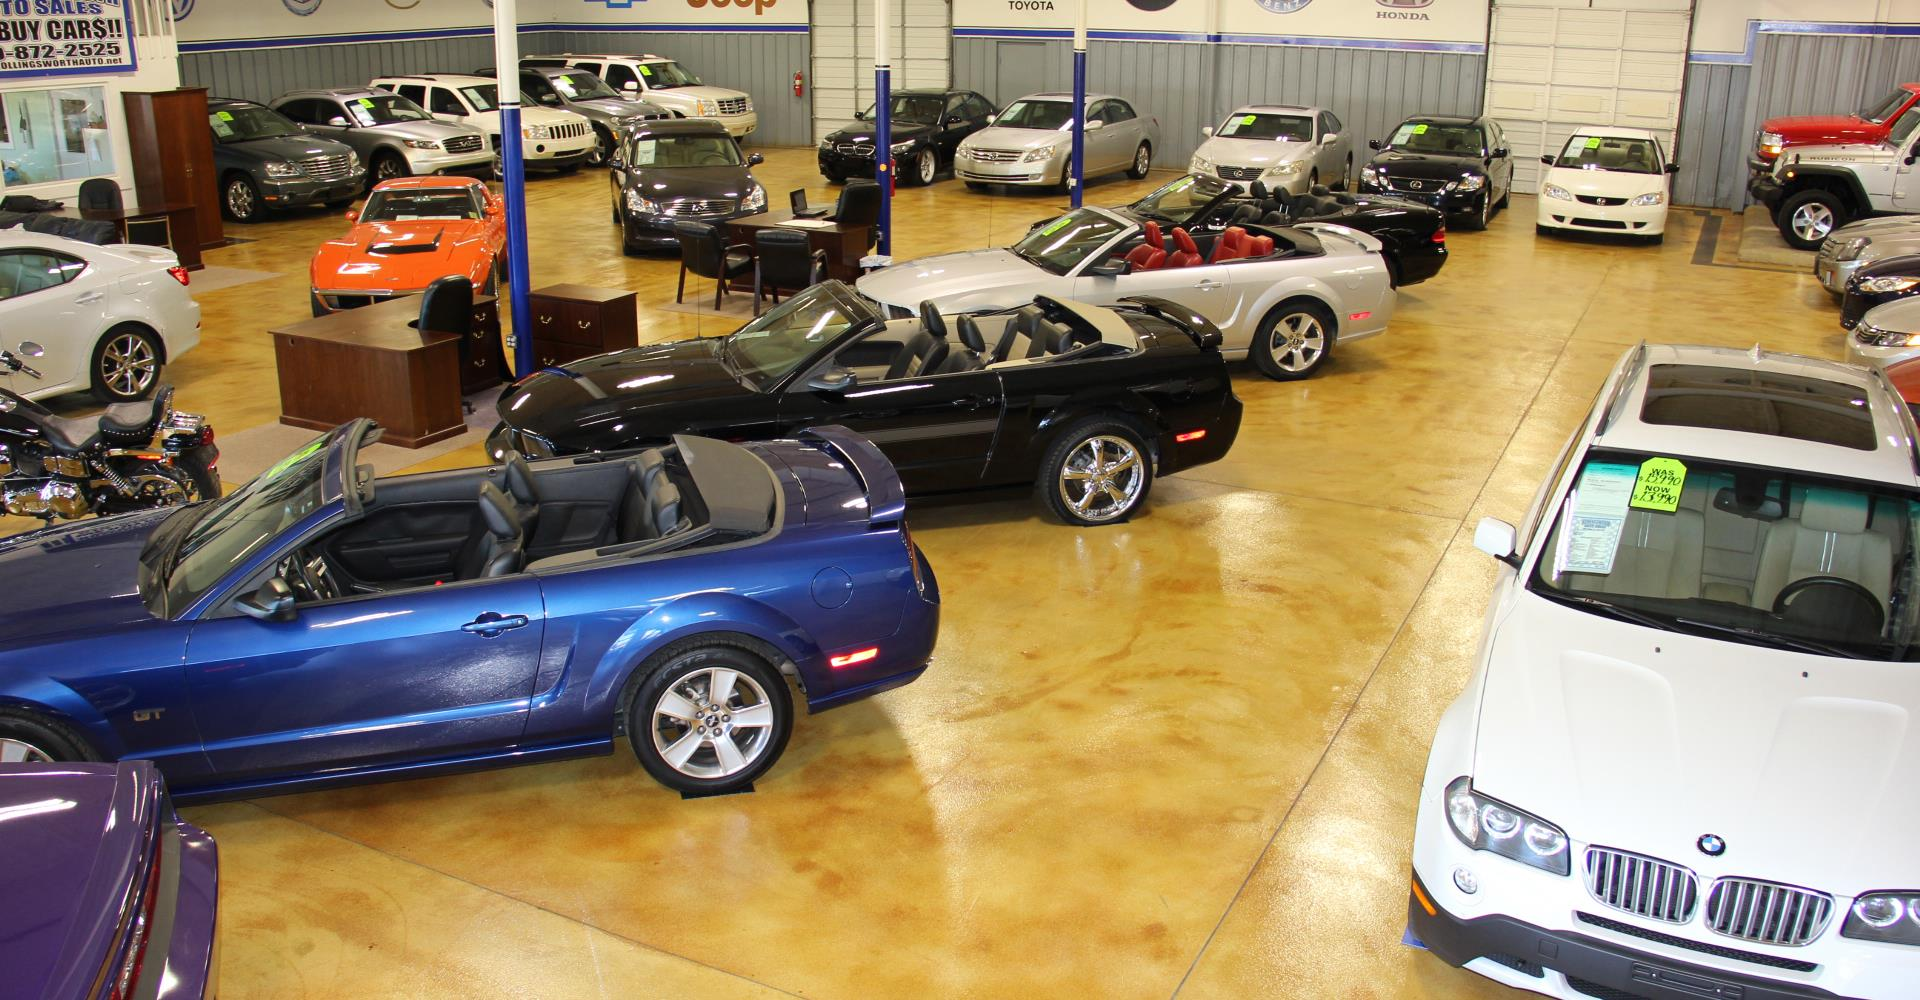 Small Car Lots Near Me Awesome Hollingsworth Auto Sales Of Raleigh Raleigh Nc